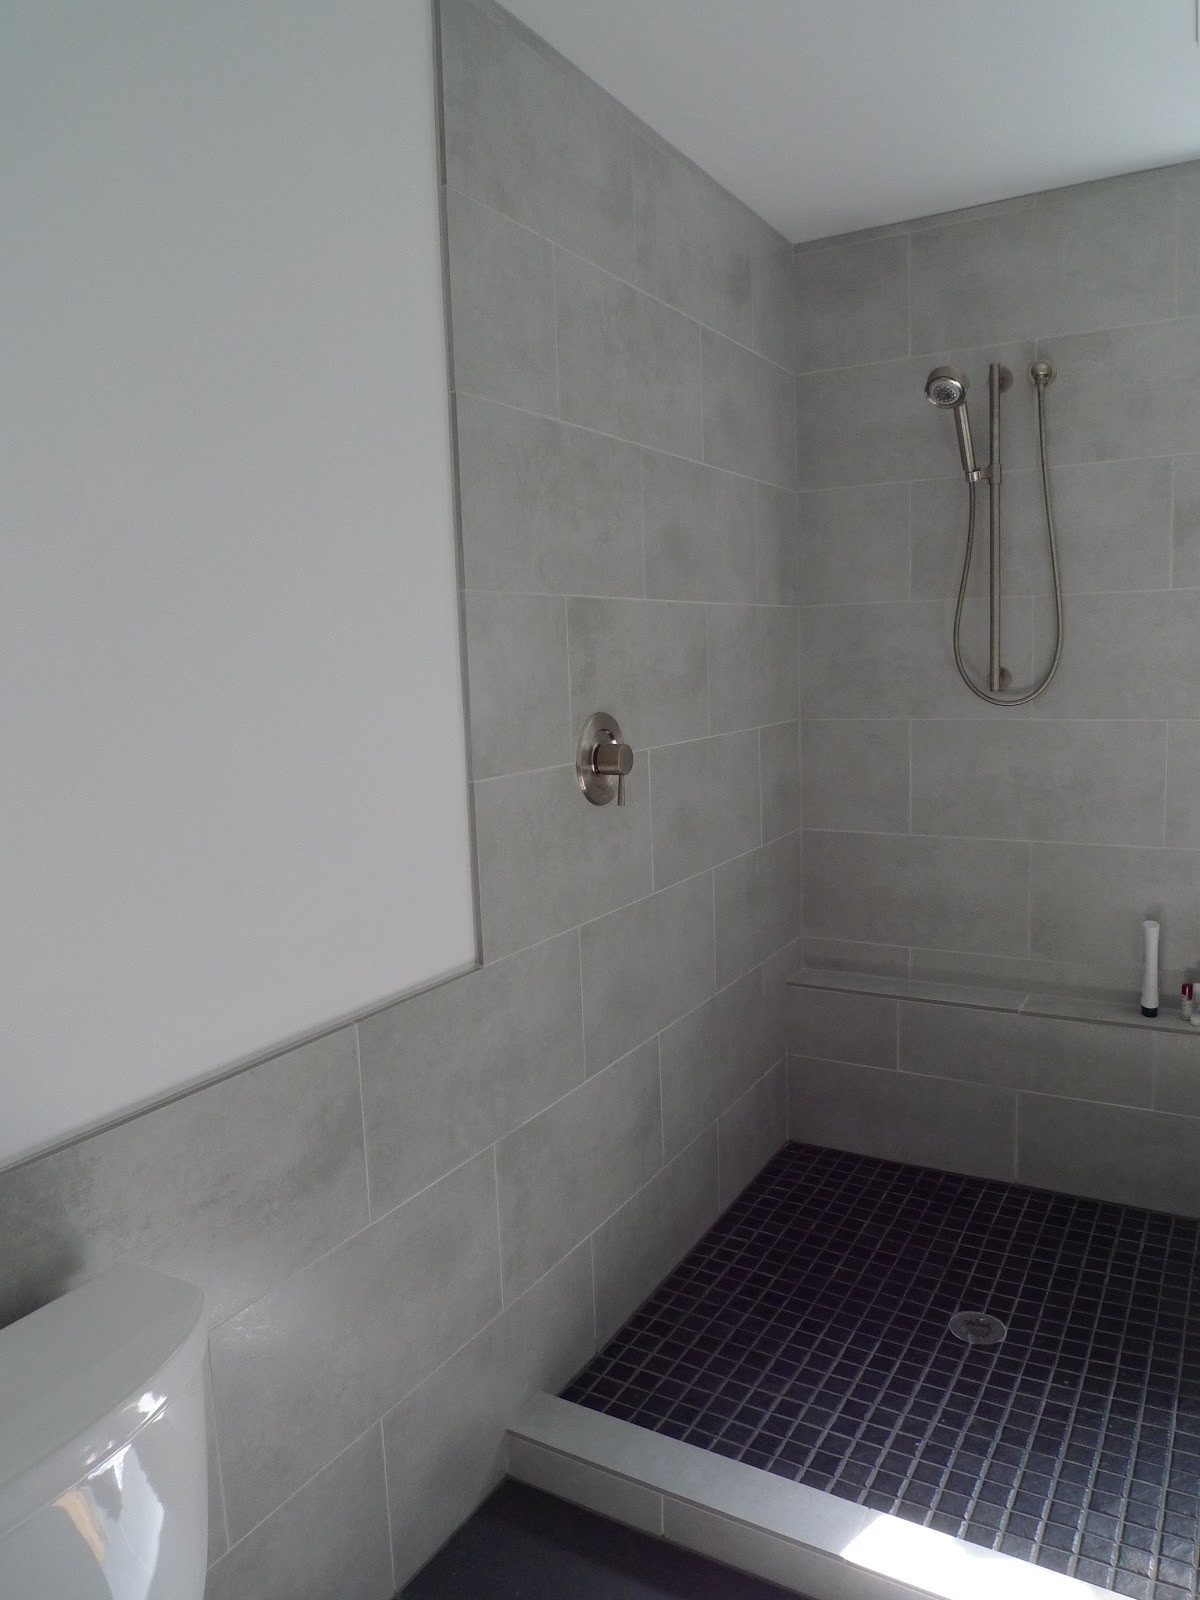 Bathroom Tile Floors  Shopping for Tile Stores in Brooklyn Concrete Look Tiles